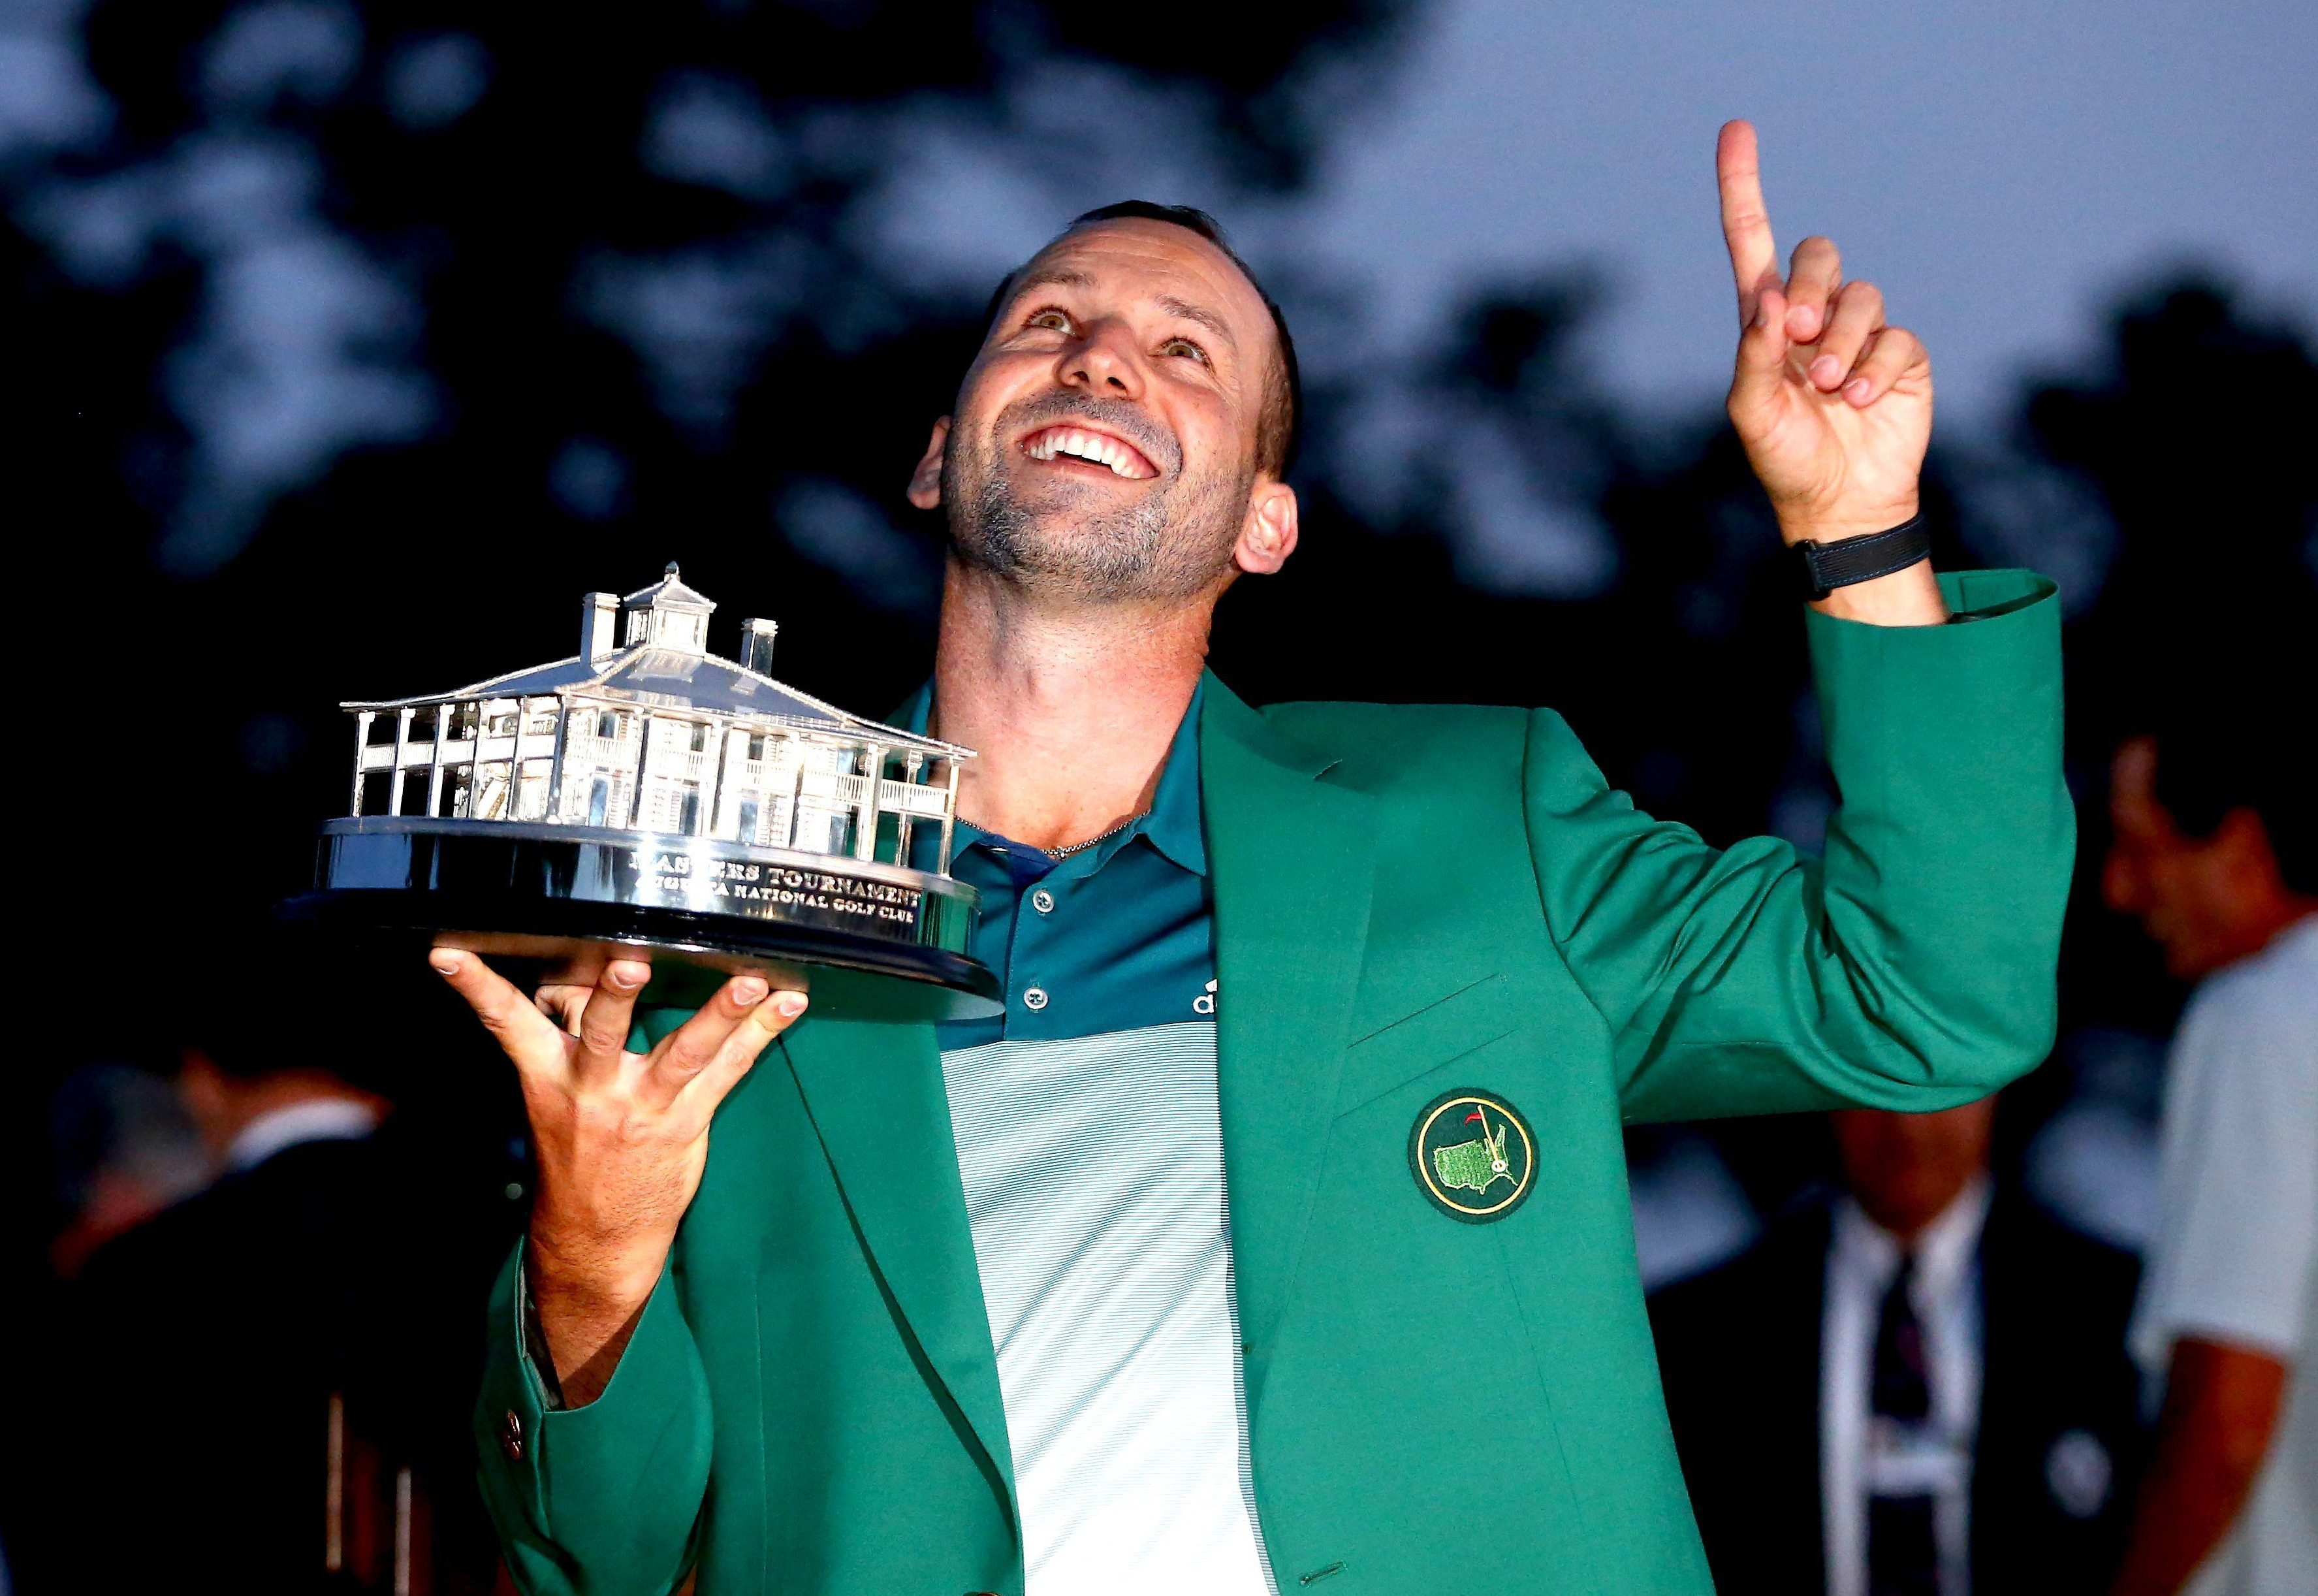 Sergio Garcia became a wealthy man when he won the 2017 Masters